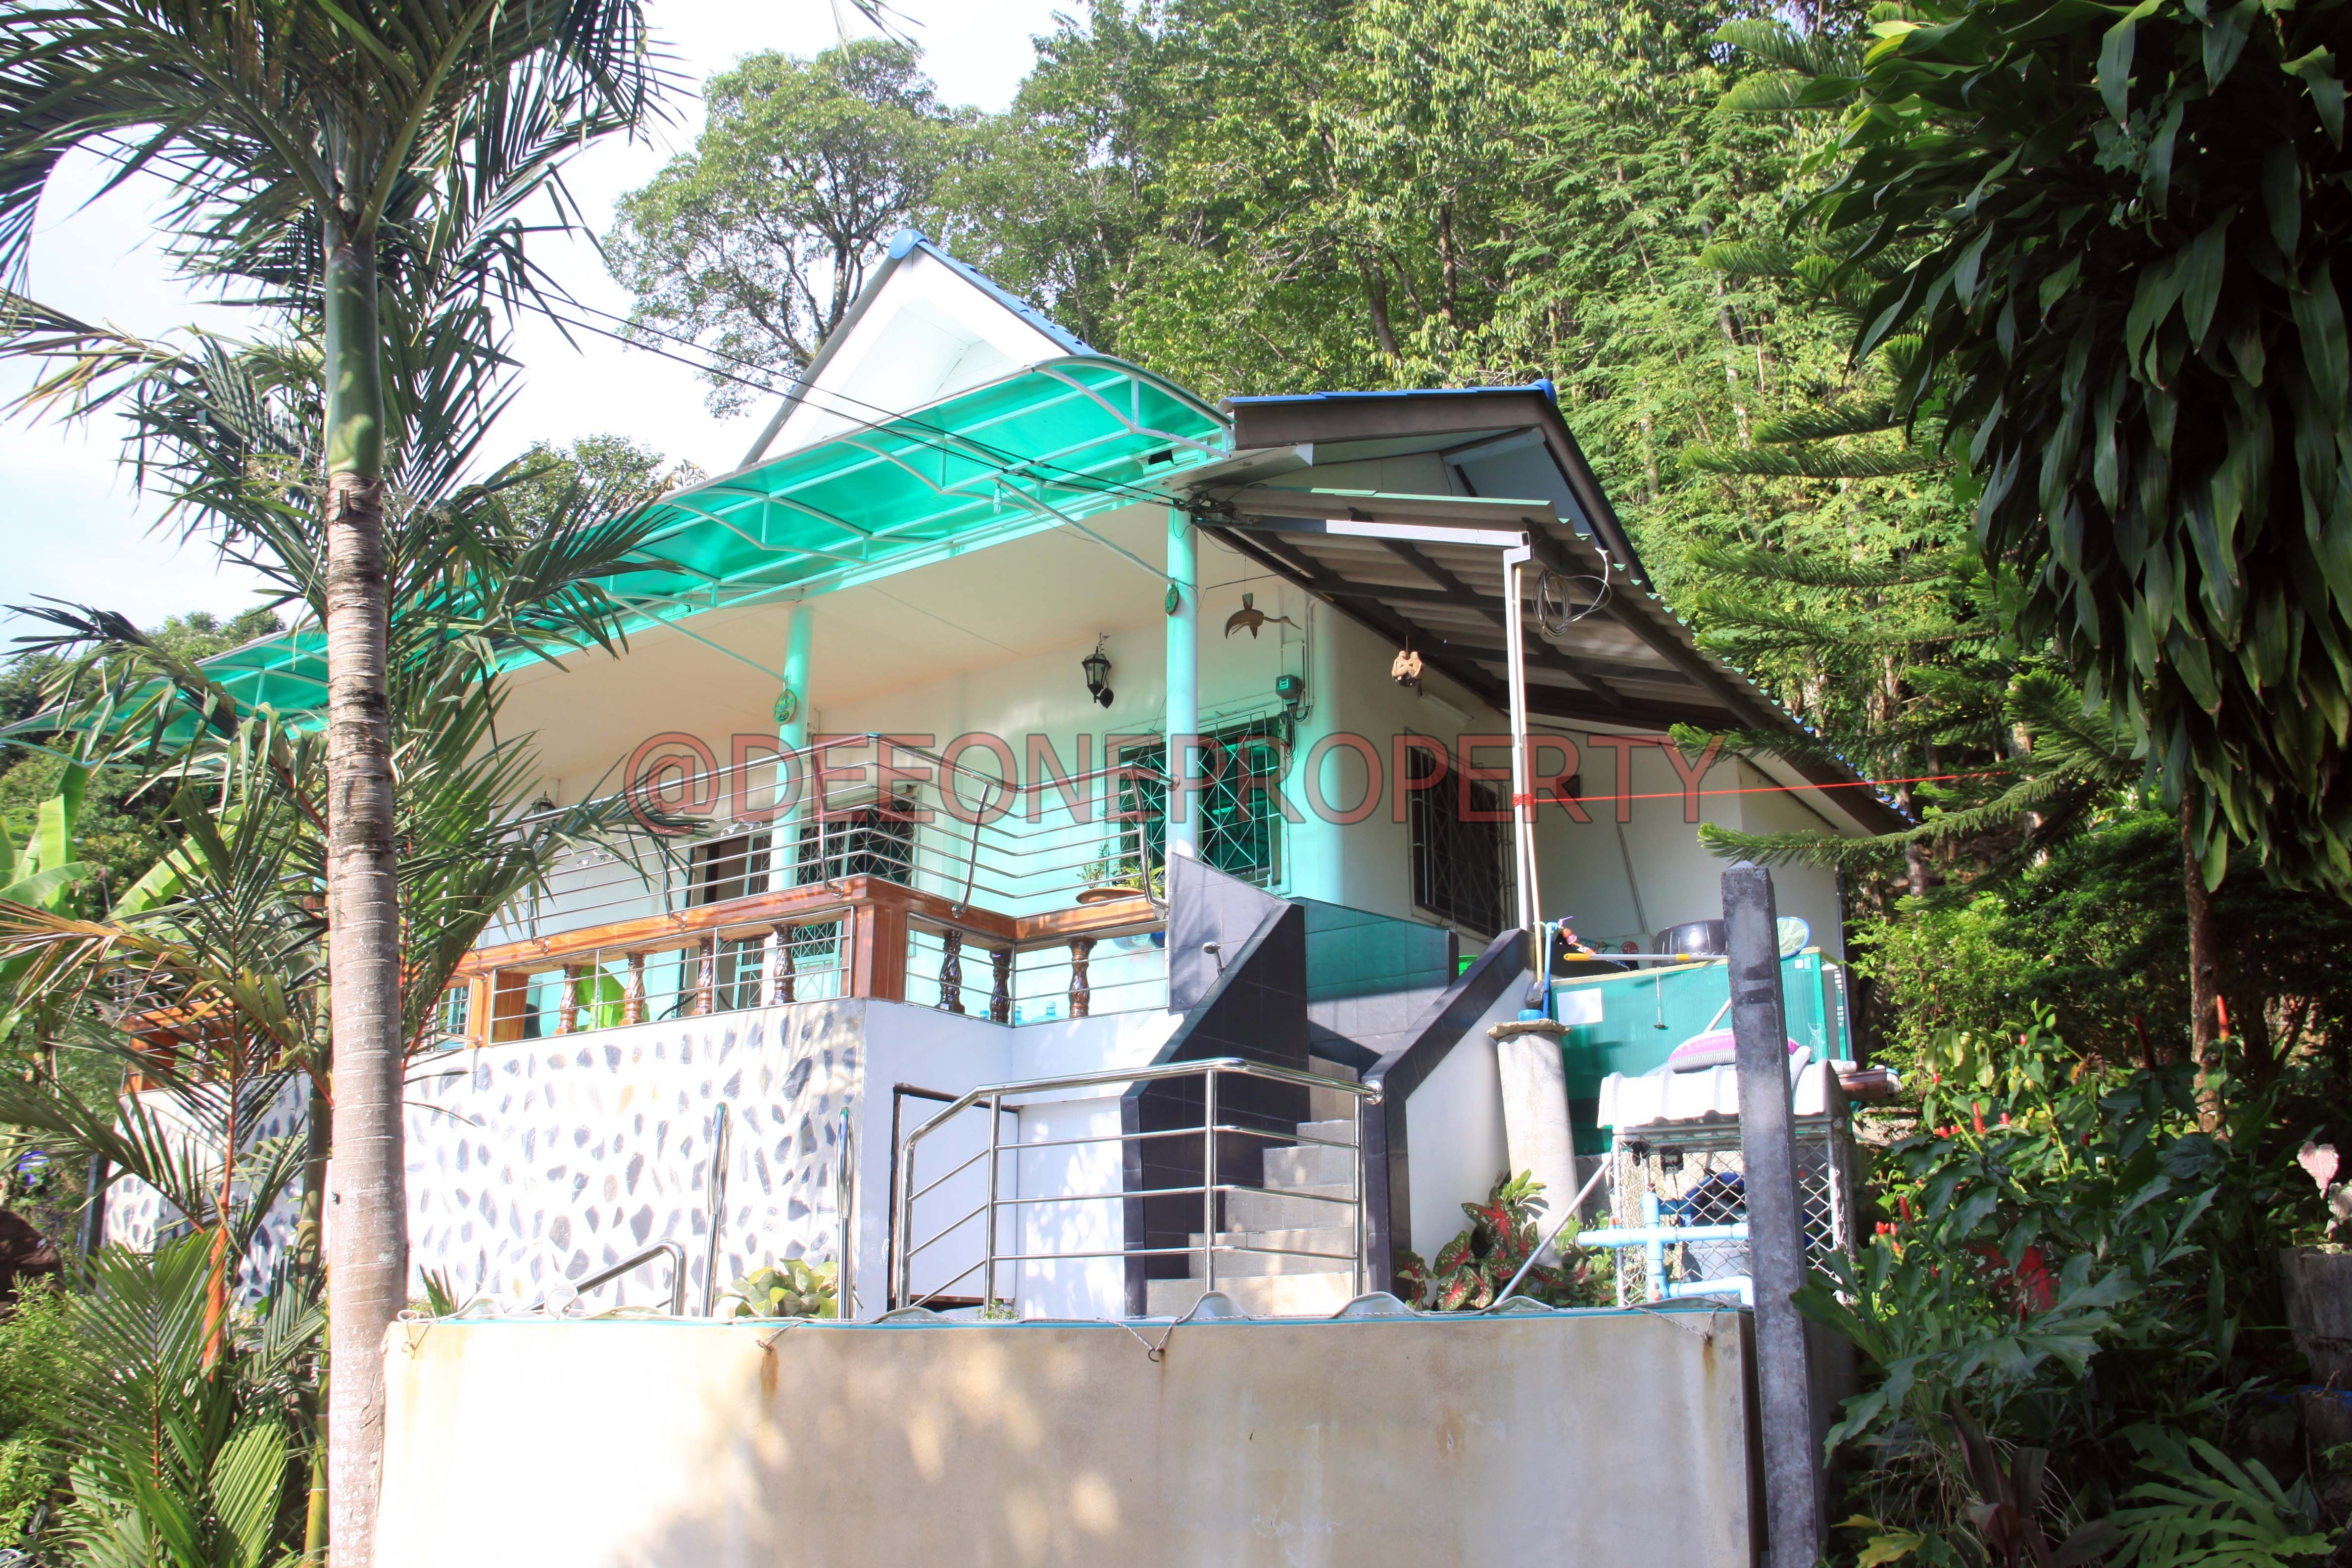 2 Bedrooms House in Center Village for Sale – Klong Prao, Koh Chang